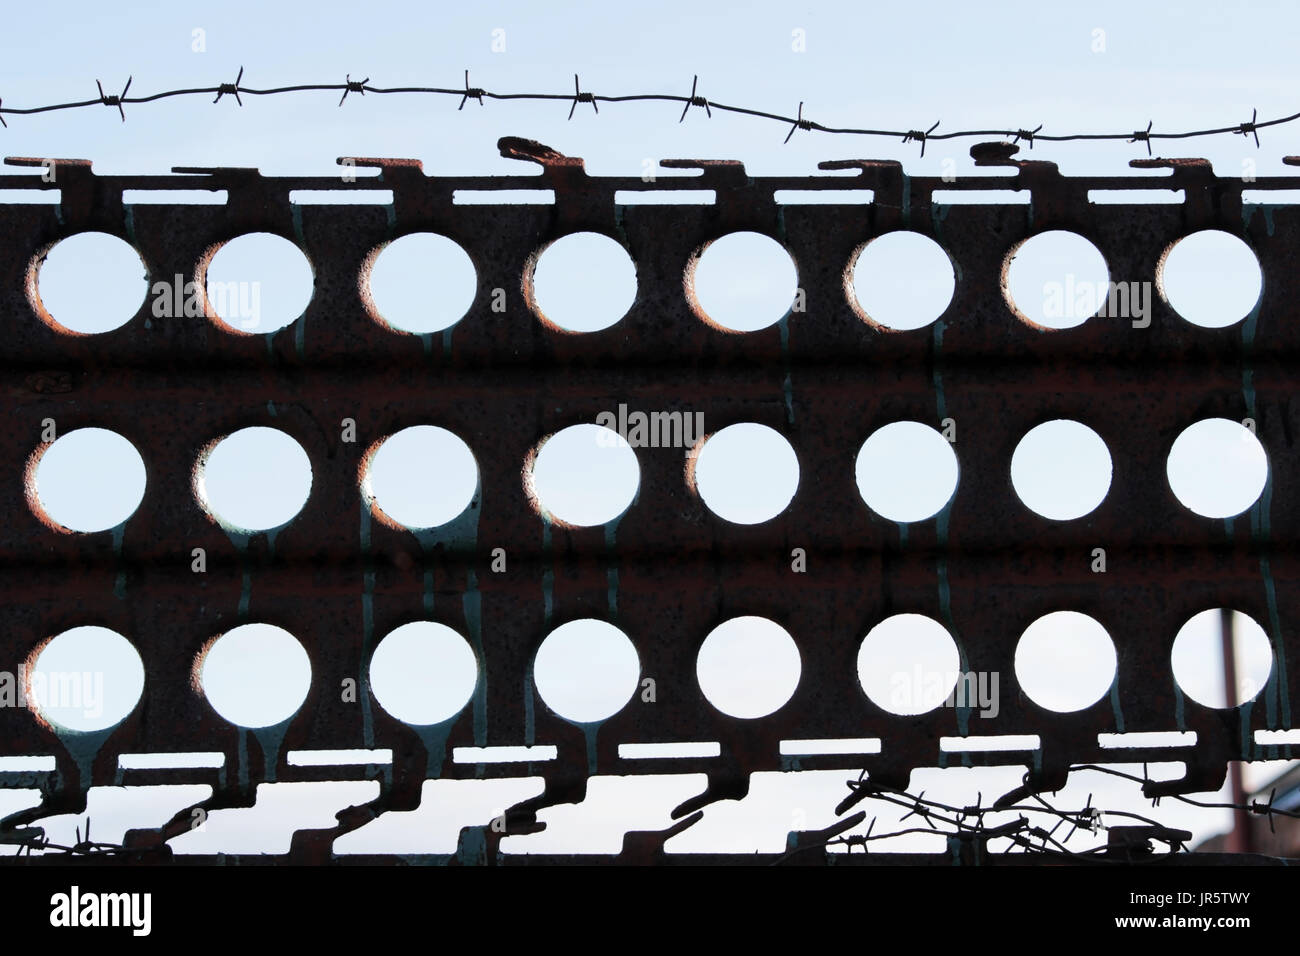 Barbed wire. Barbed wire on a fence of metal iron sheets with holes against blue sky to feel worrying - Stock Image